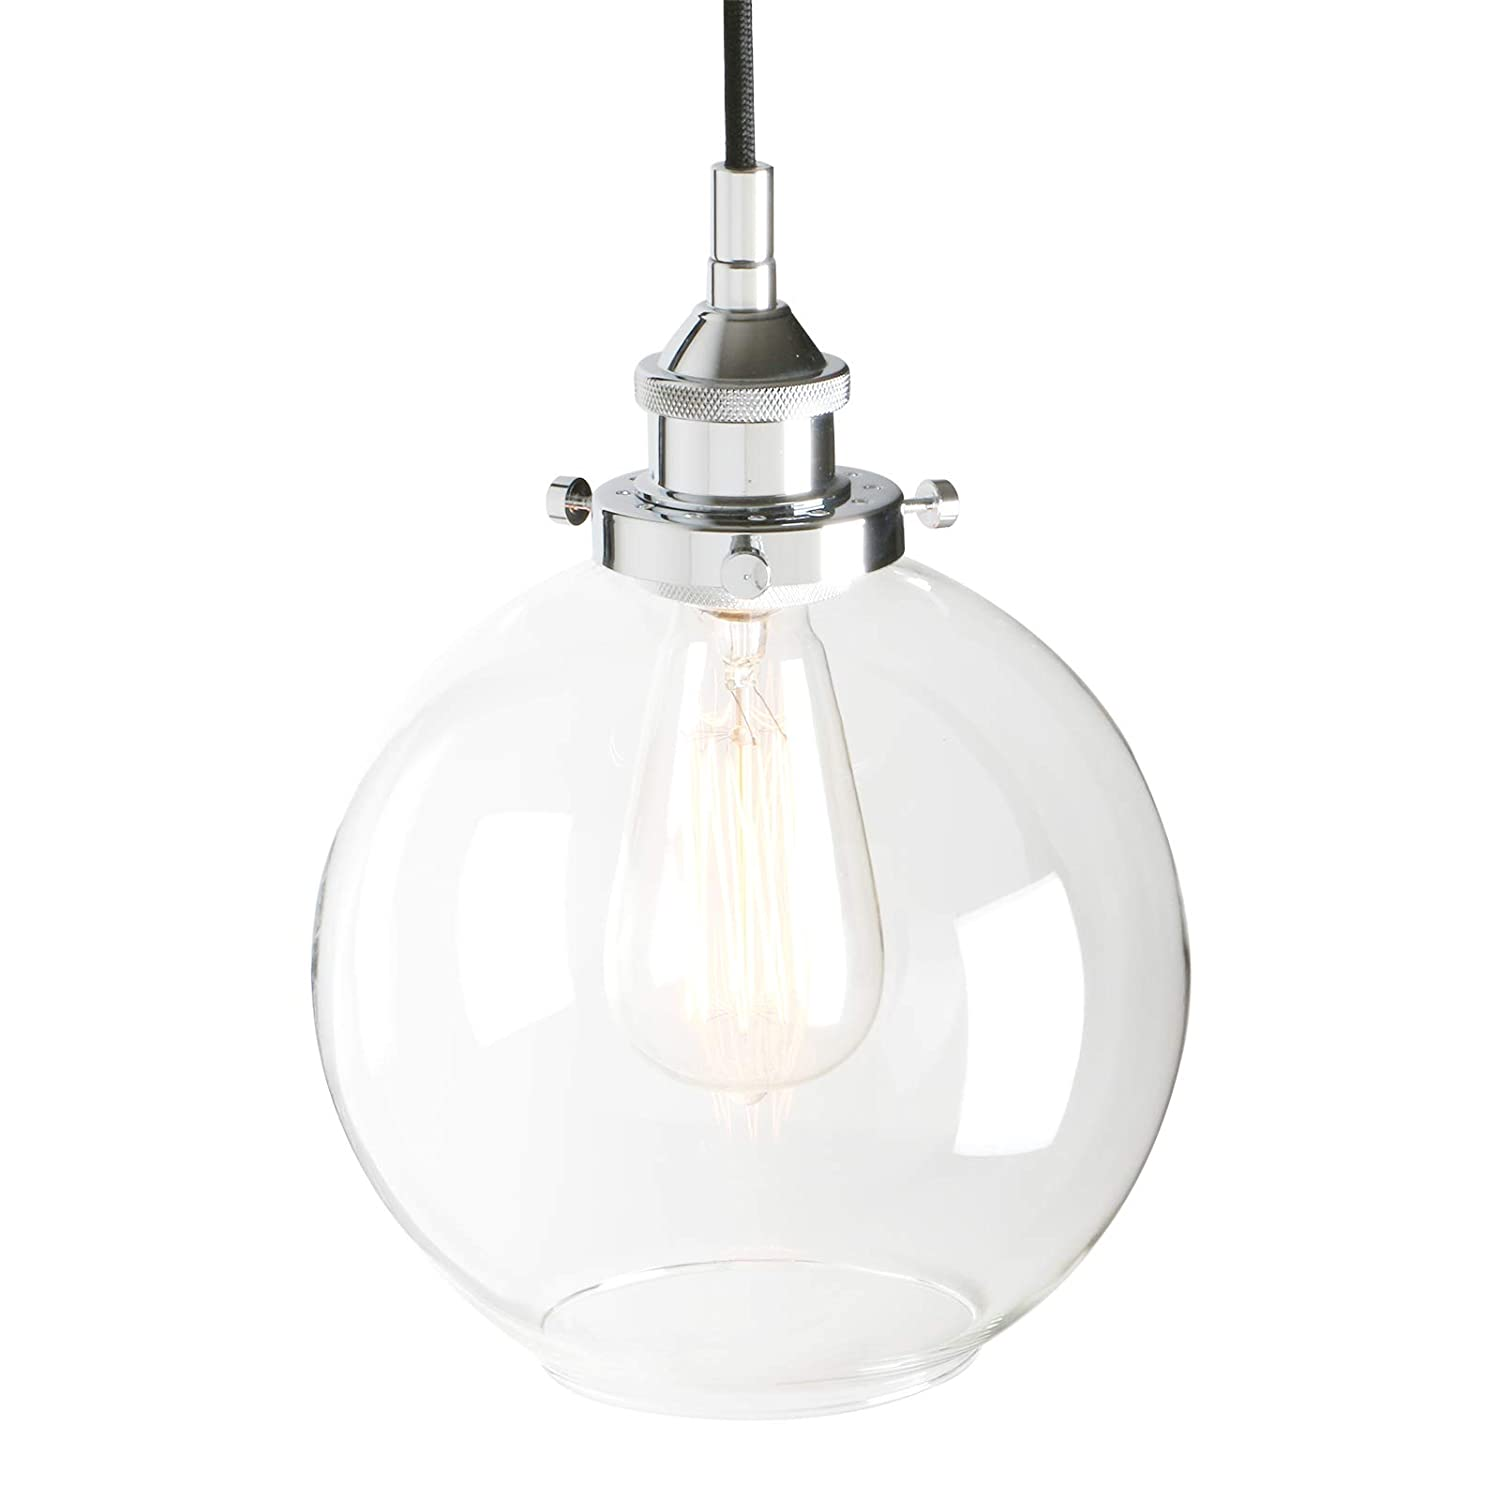 Pathson 7 9 industrial vintage modern hanging ceiling light loft bar kitchen pendant light fixture chandelier decorative lightingglobe clear glass lamp